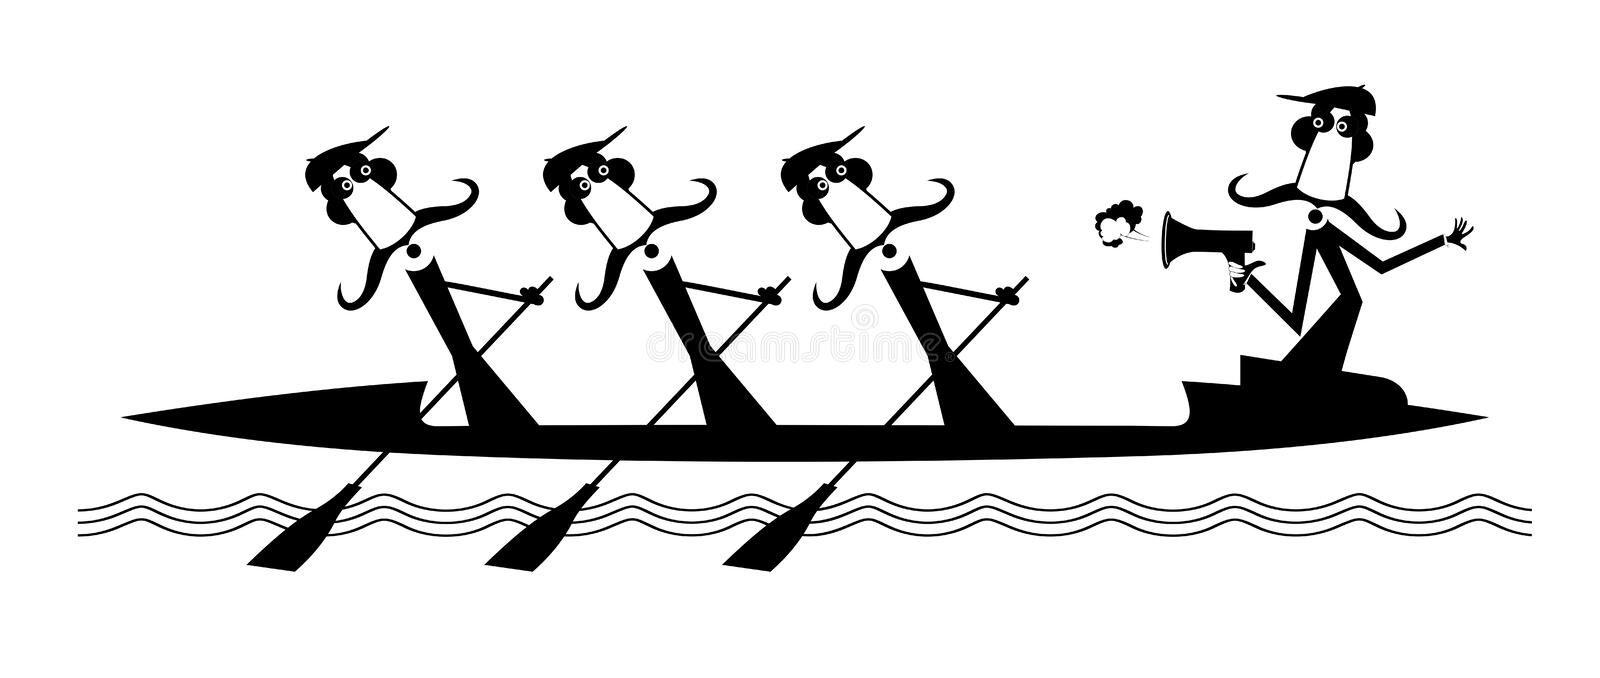 Kayak, three oarsman and quartermaster with megaphone isolated illustration vector illustration